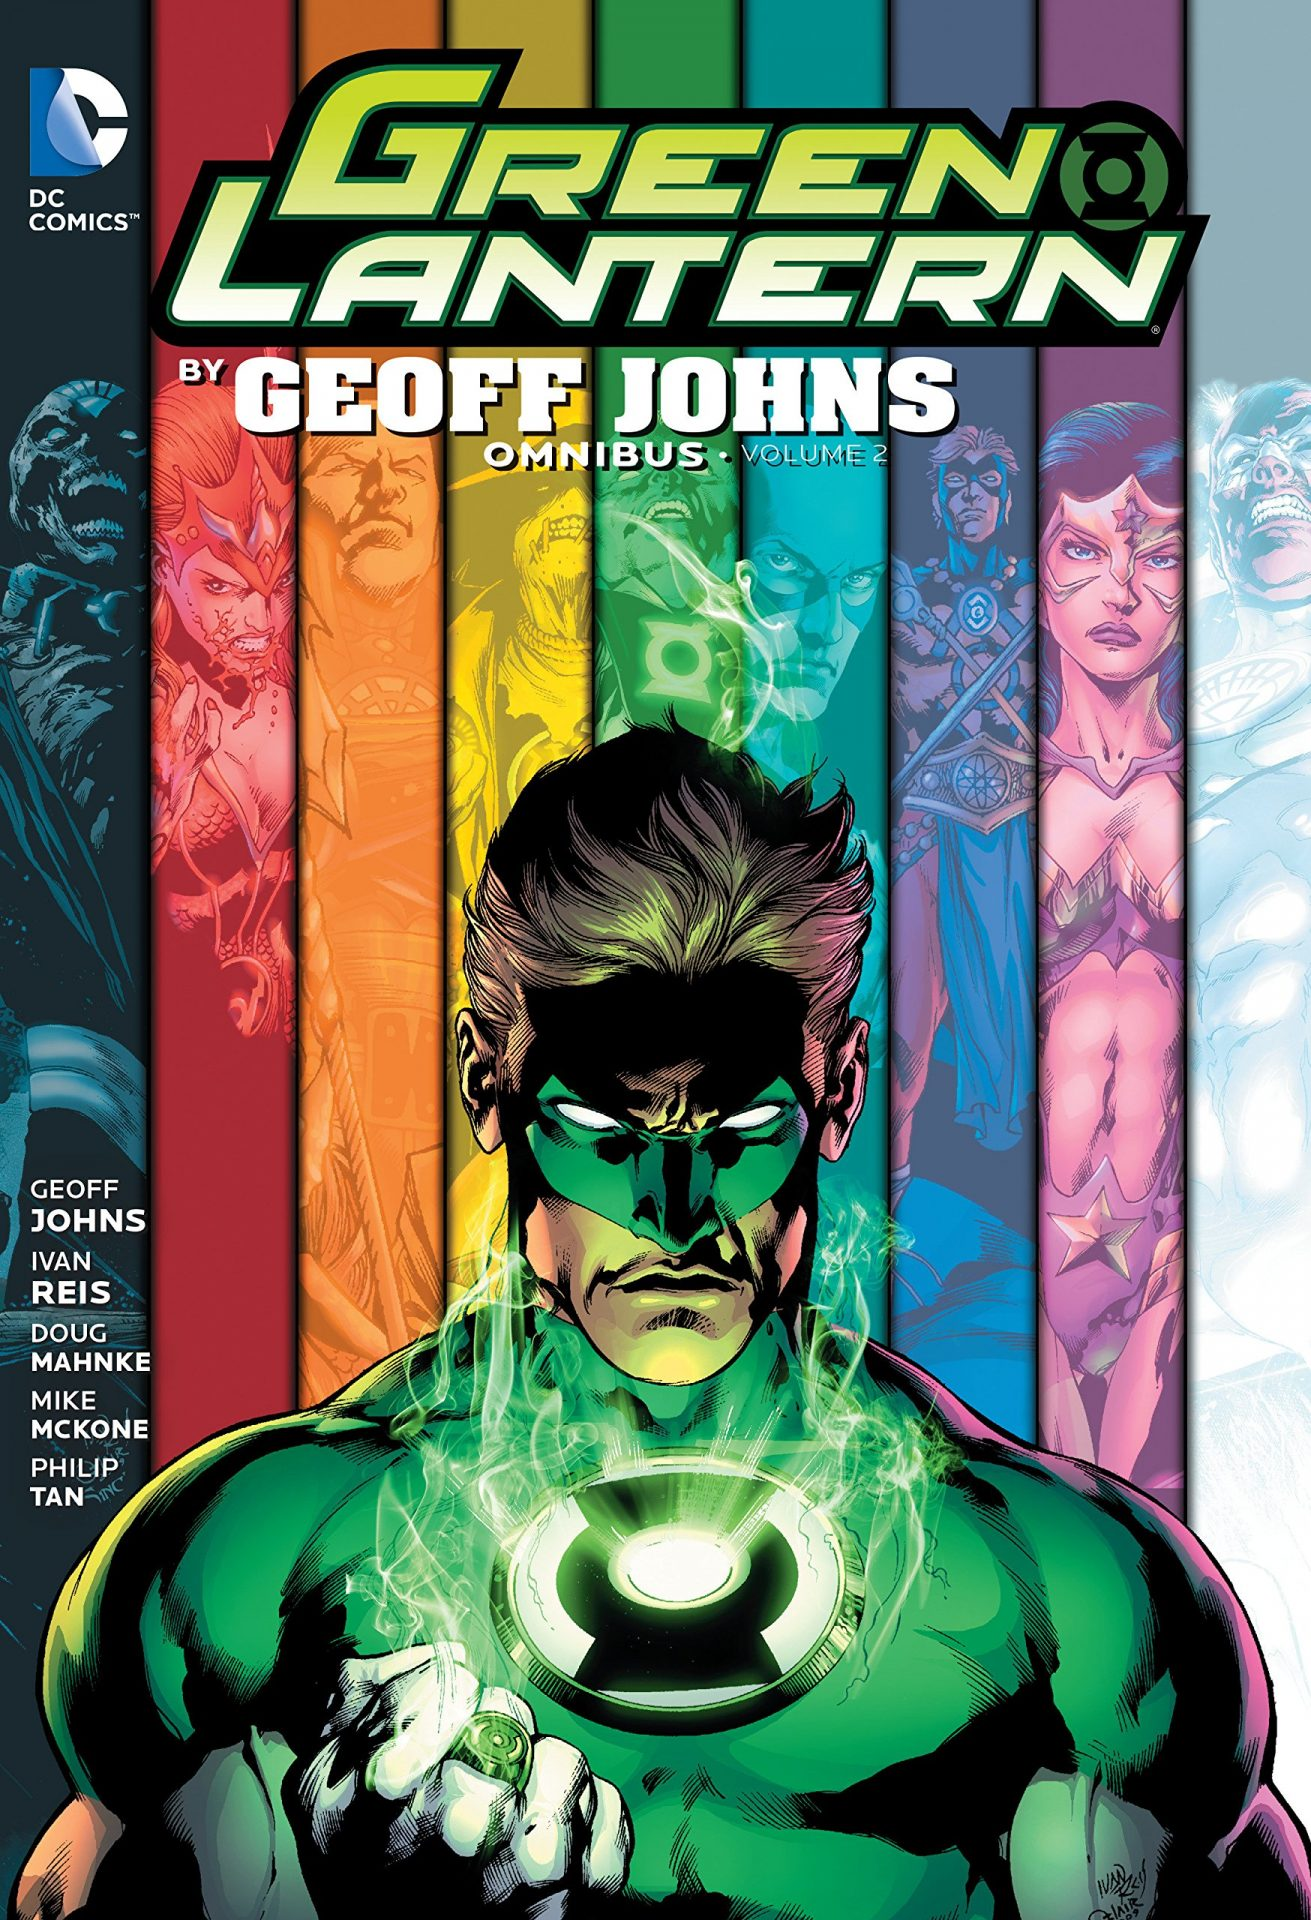 Geoff Johns reinvigorated the Green Lantern mythology for all time in the early 2000s, the comics' most popular run by far.